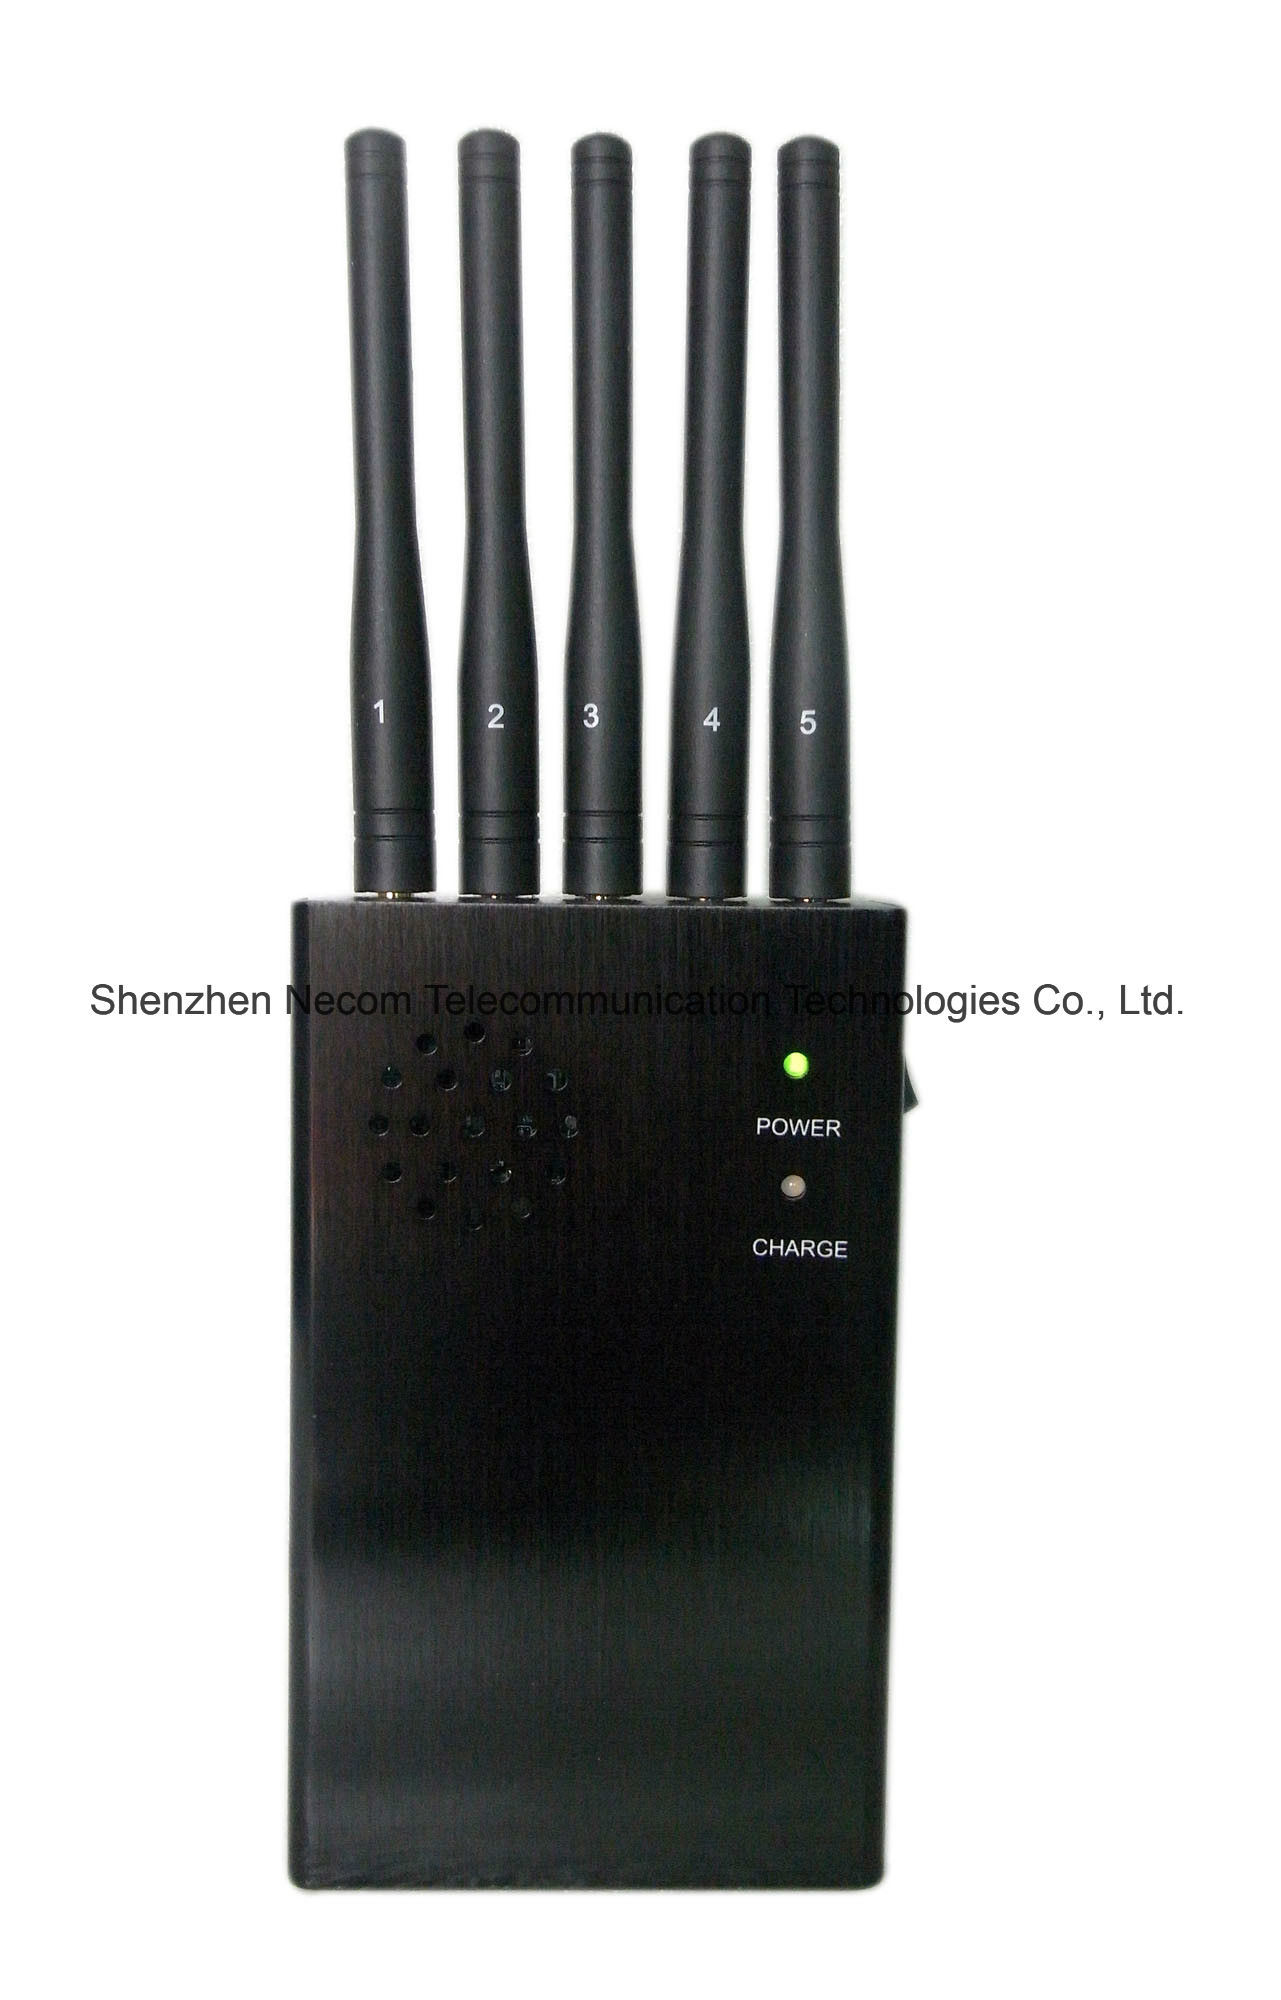 jammer 433 mhz - China 5 Antenna Handheld Phone Jammer & WiFi Jammer & GPS Jammer, 5bands Handheld Jammer for Cellphone, Wi-Fi, 433, 315 Remote Control Jammer - China 5 Band Signal Blockers, Five Antennas Jammers